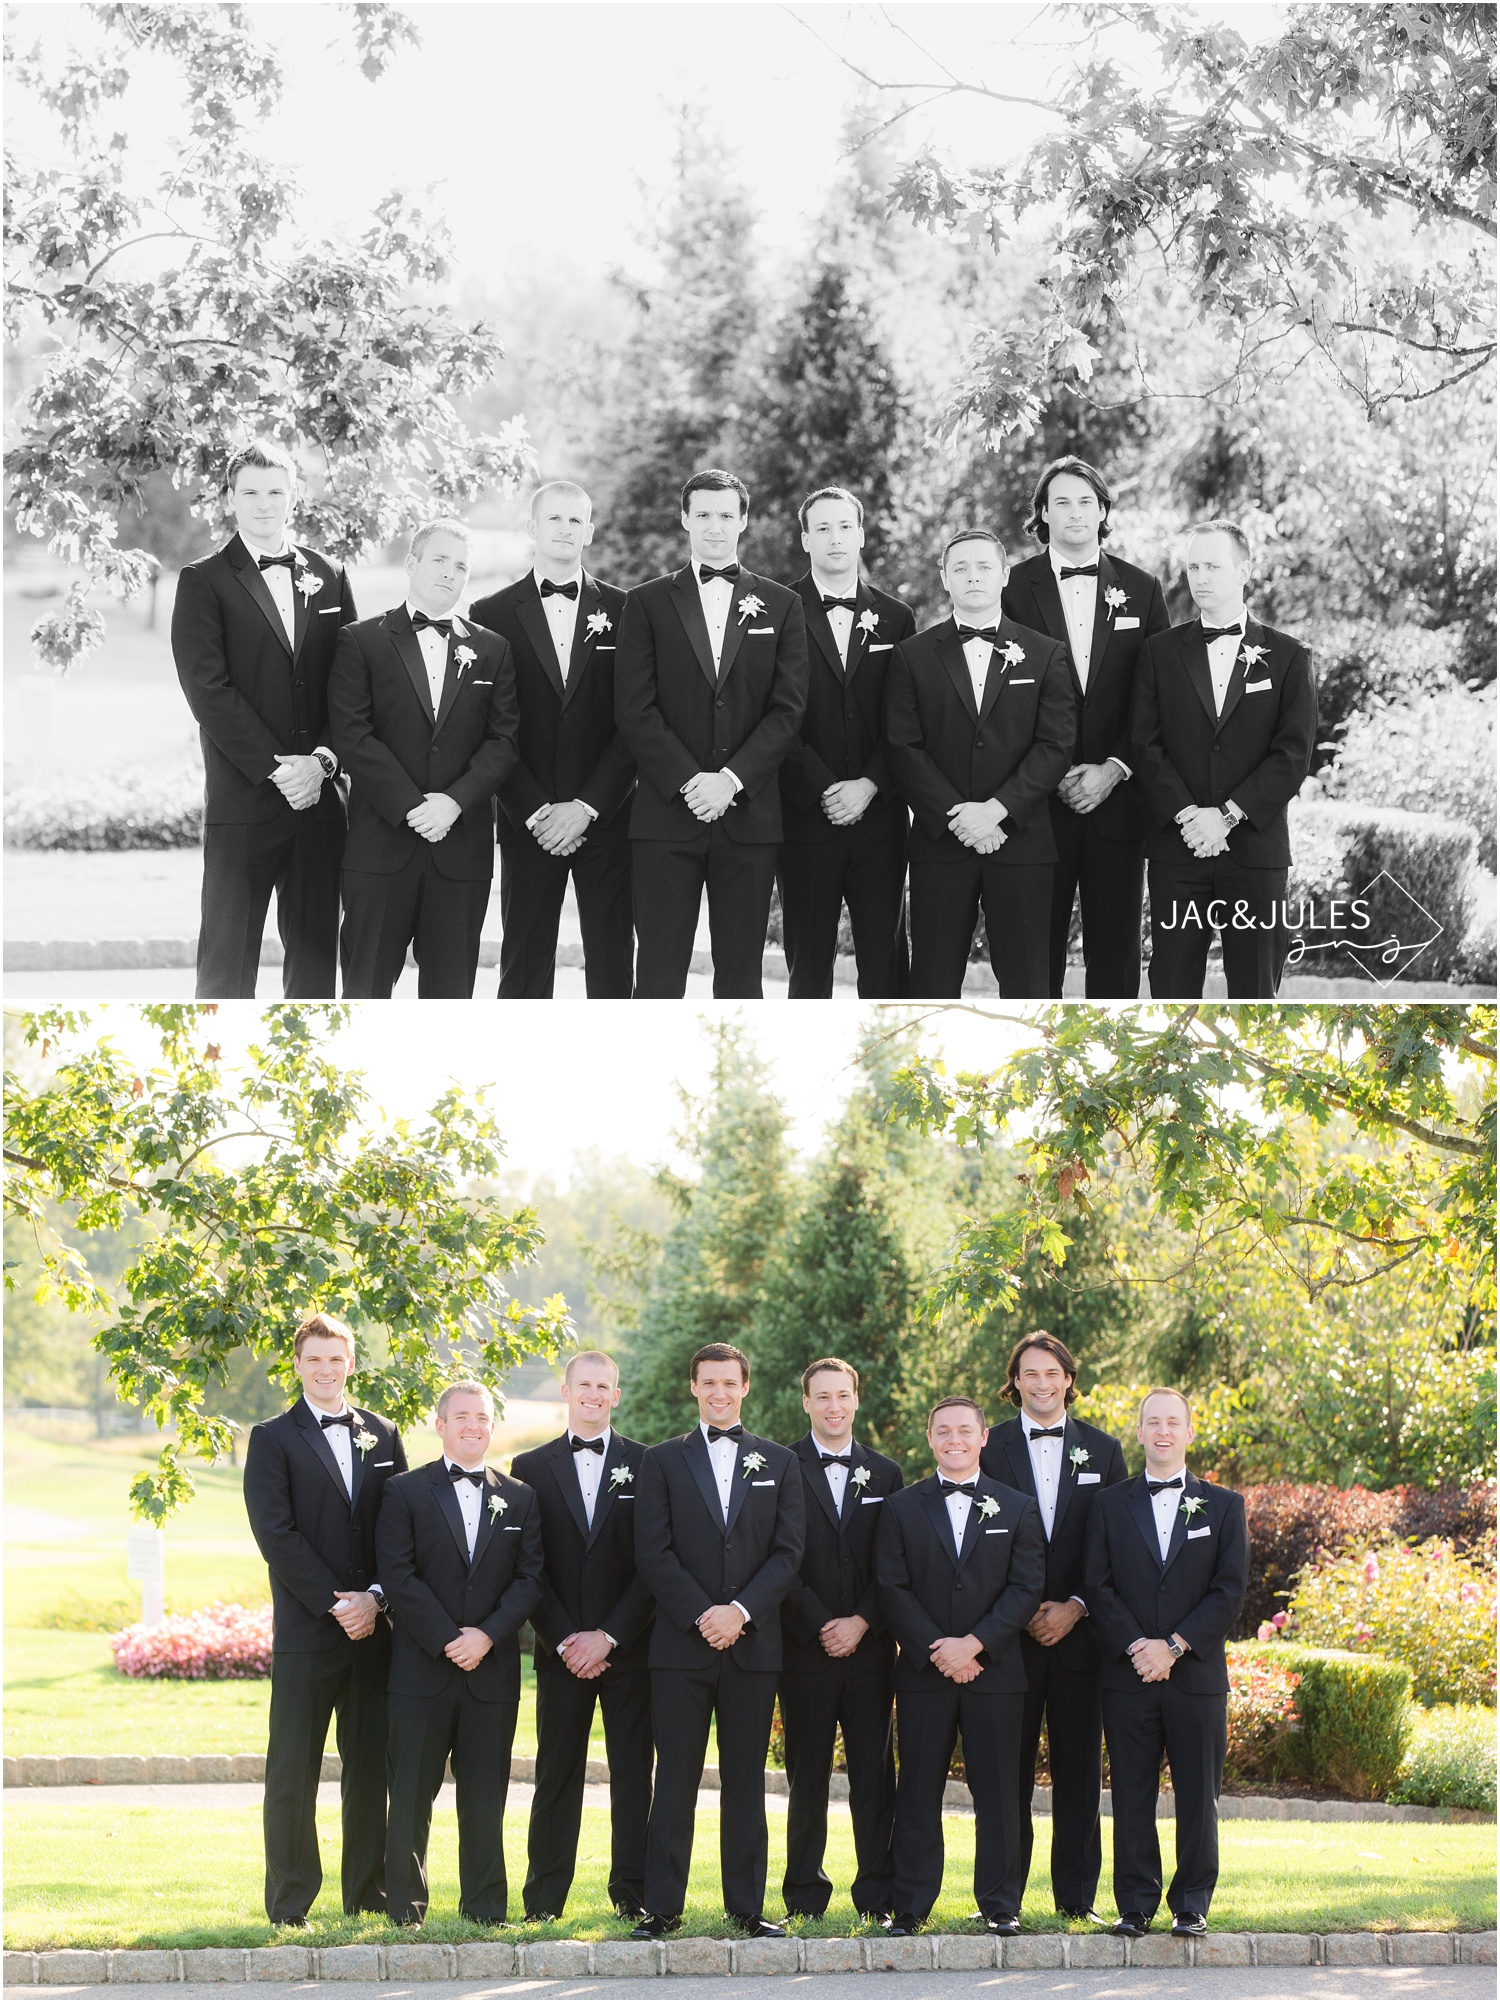 groomsmen pictures at eagle oaks golf and country club in wall, nj.